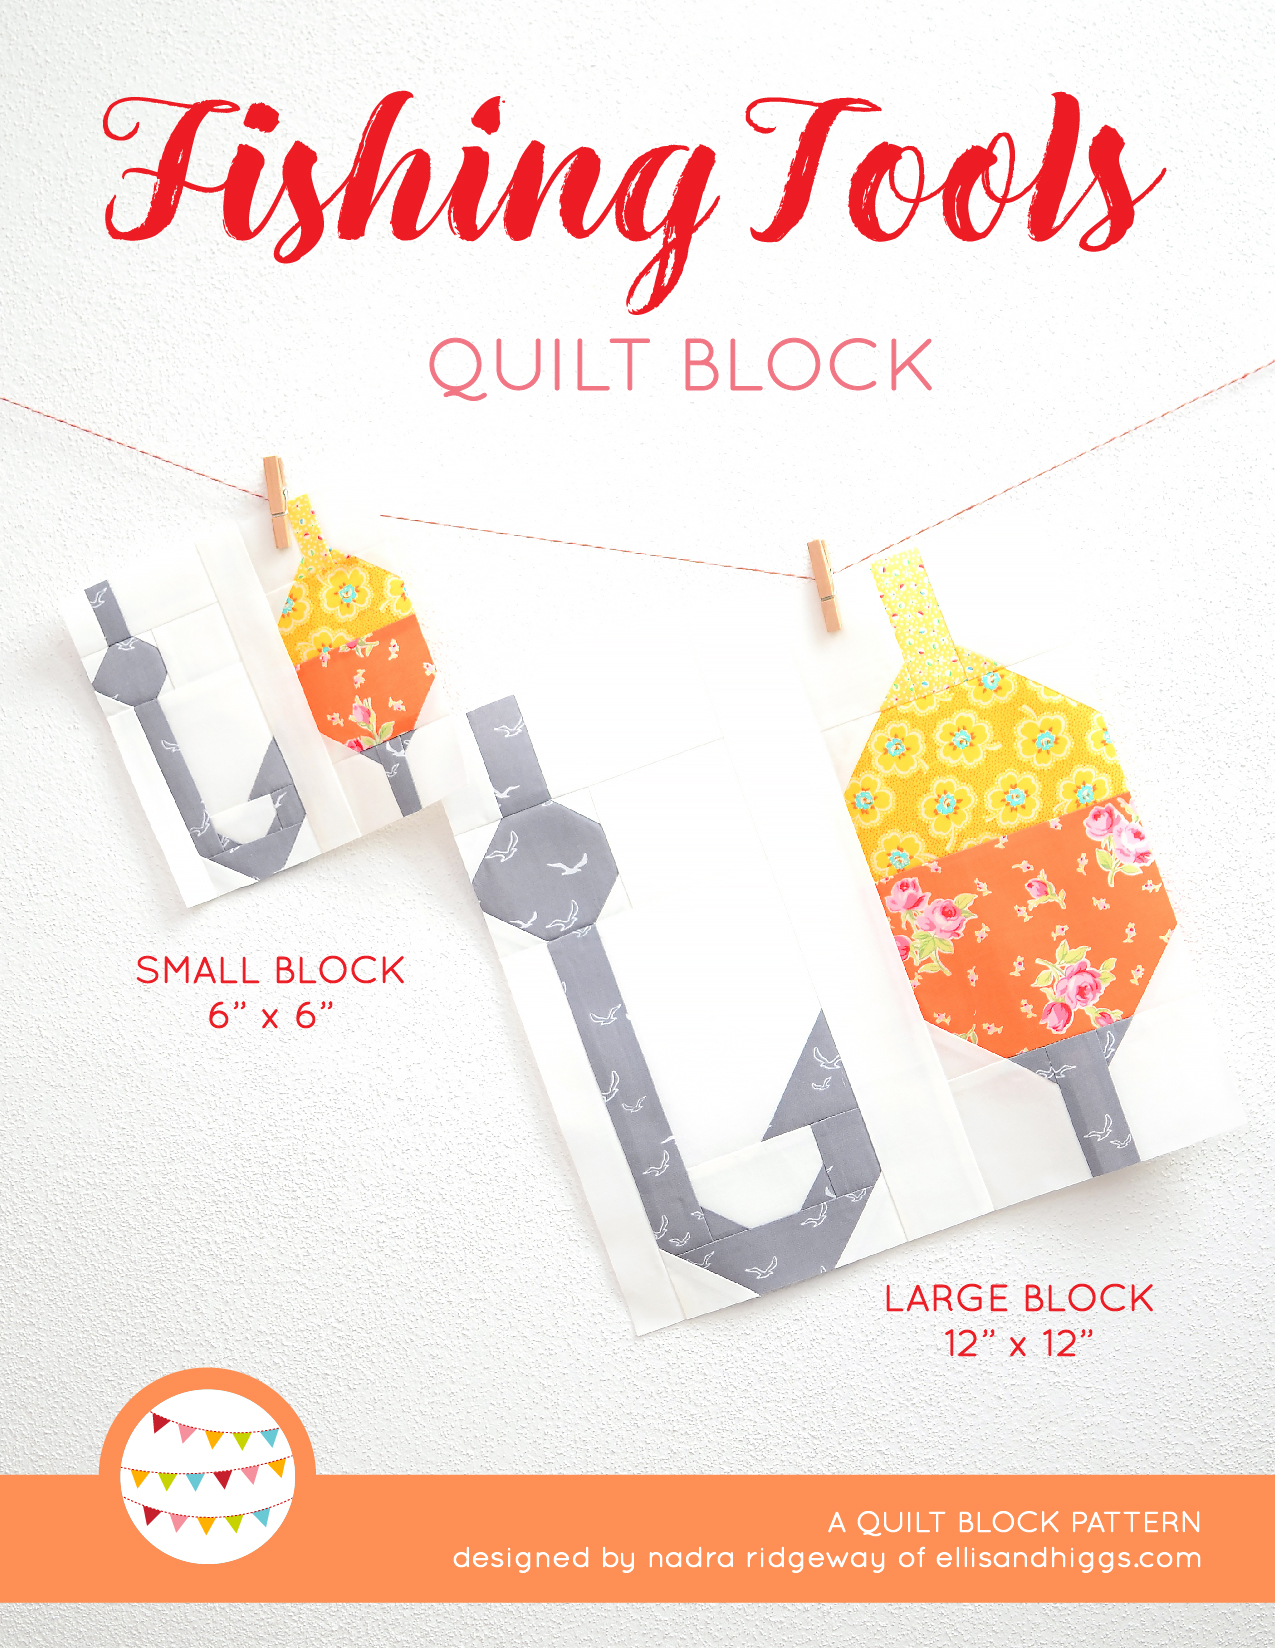 Summer quilt patterns - Fishing Tools quilt pattern